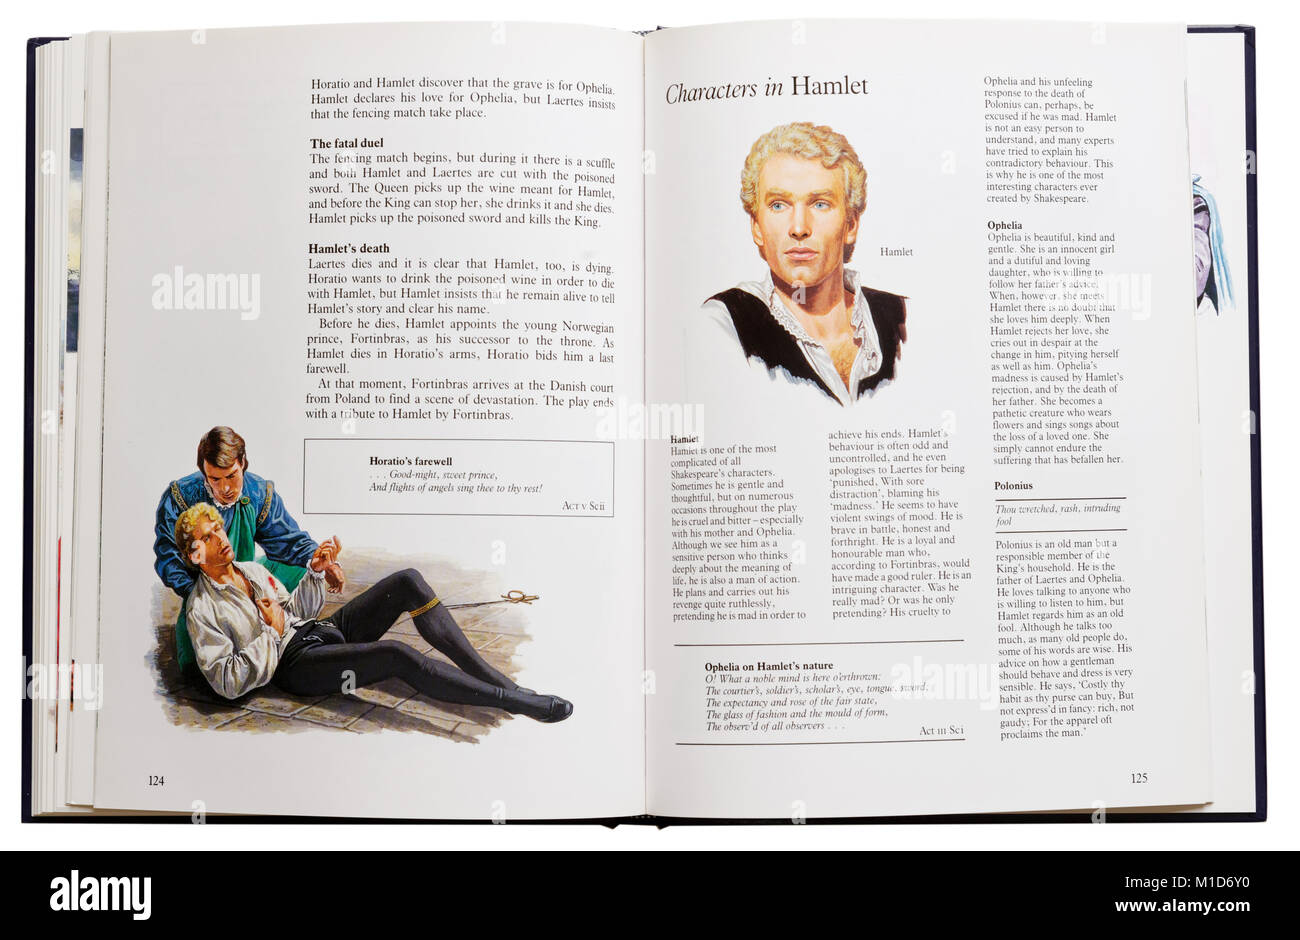 an analysis of the similarities of hamlet fortinbras and laertes Essays related to hamlet, laertes, and fortinbras 1 shakespeare tragedy hamletlaertes,fortinbras and hamlet laertes and hamlet have many similarities.